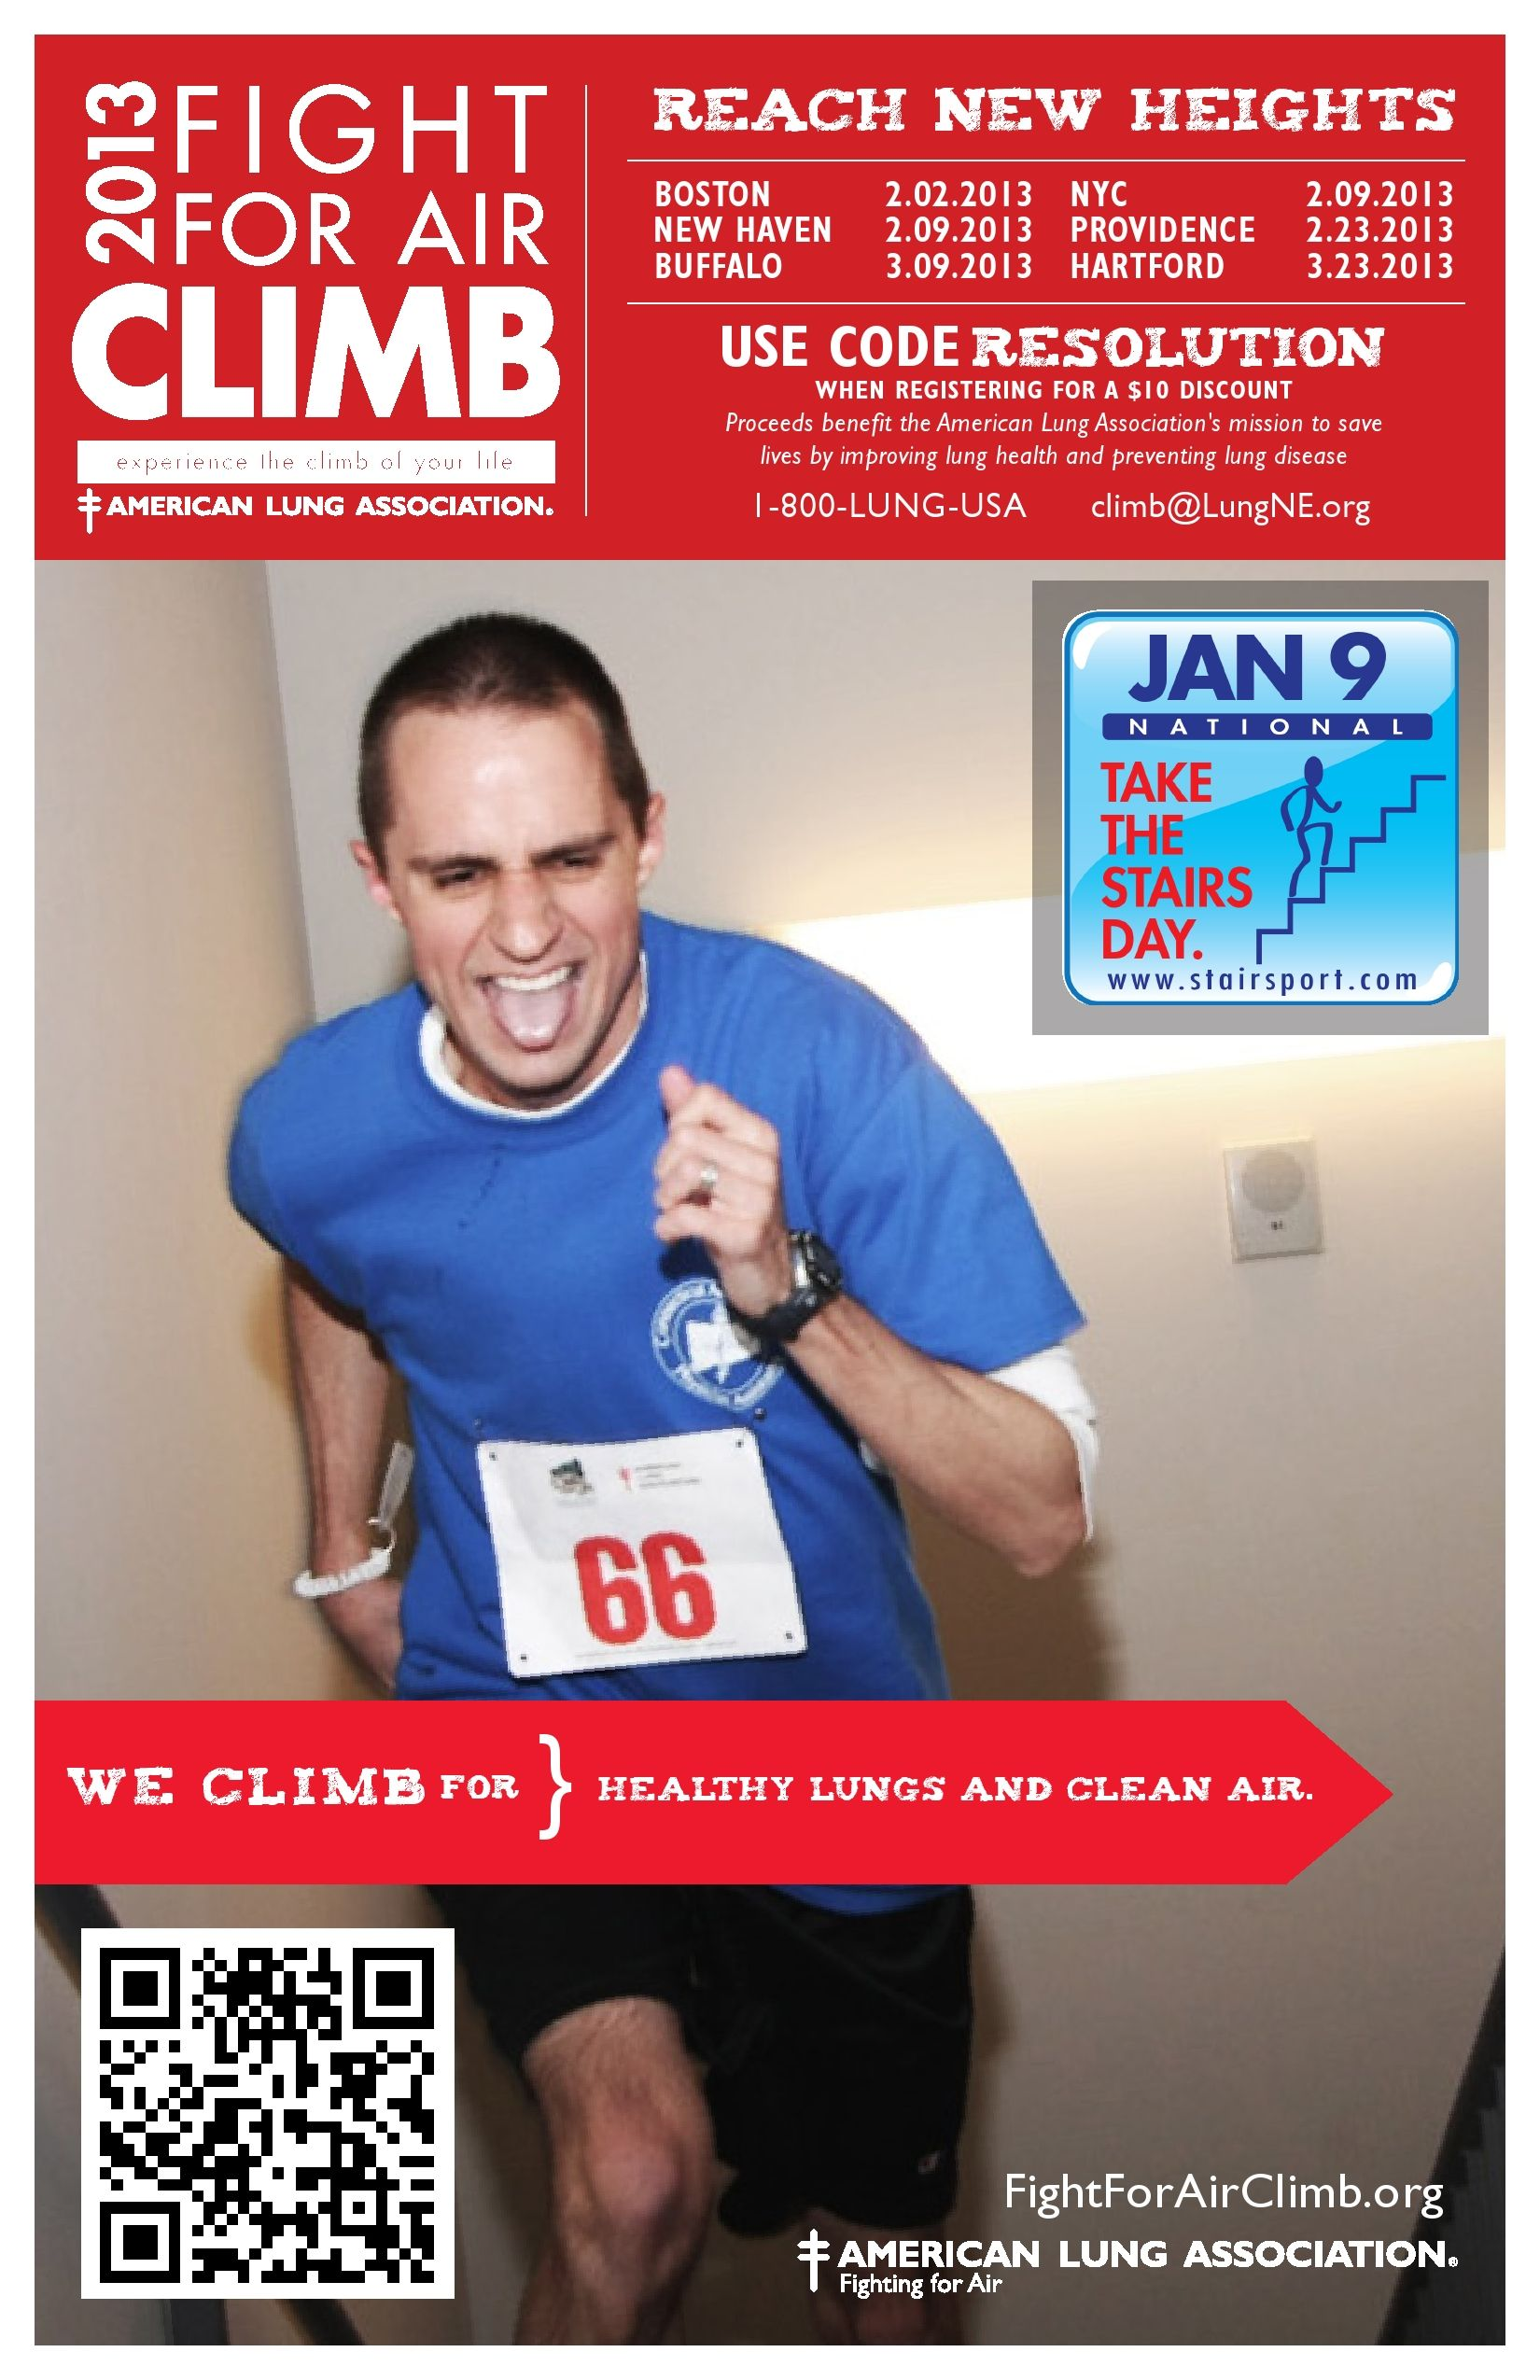 The American Lung Association Is Joining With Www Stairsport Com In Declaring January 9 2013 As National Take American Lung Association Take The Stairs Lunges